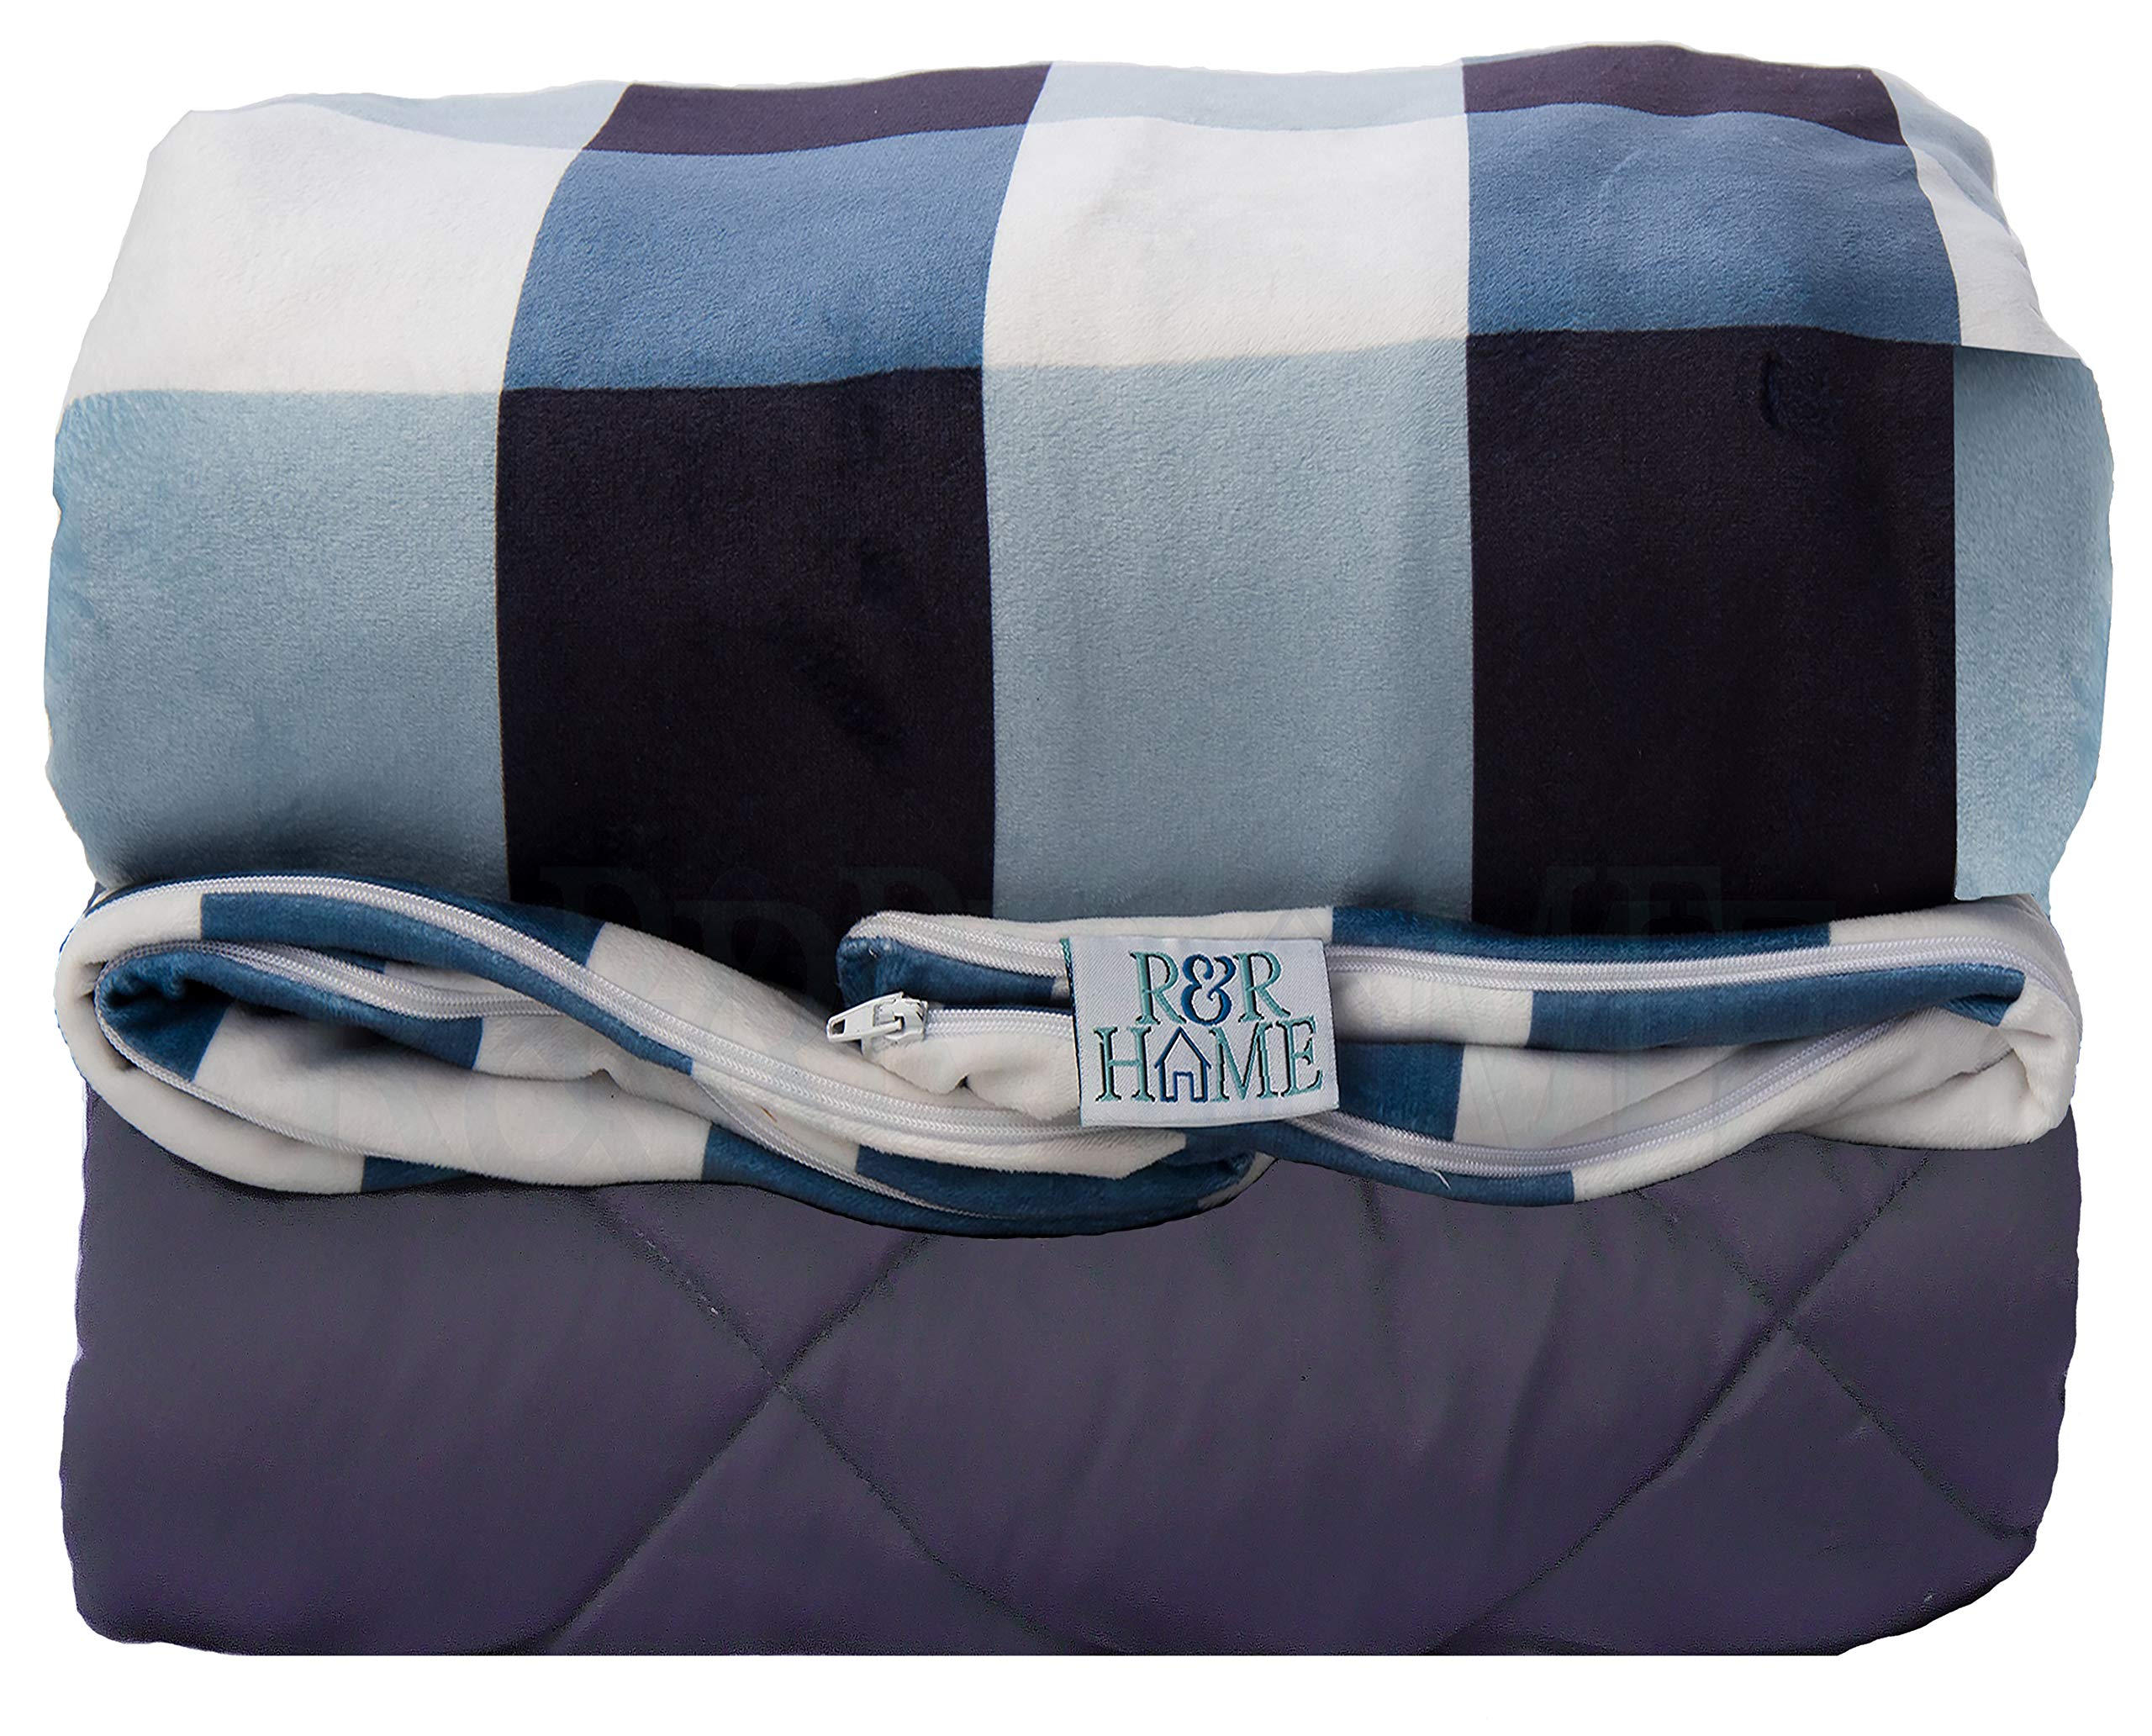 R&R HOME - Premium Weighted Blanket & Removable Duvet Cover Set for Kids & Adults   King/XLarge   60''x80''   20 lbs   Gray Cotton Blanket   Navy Blue & White Checkered Minky Cover by R&R HOME